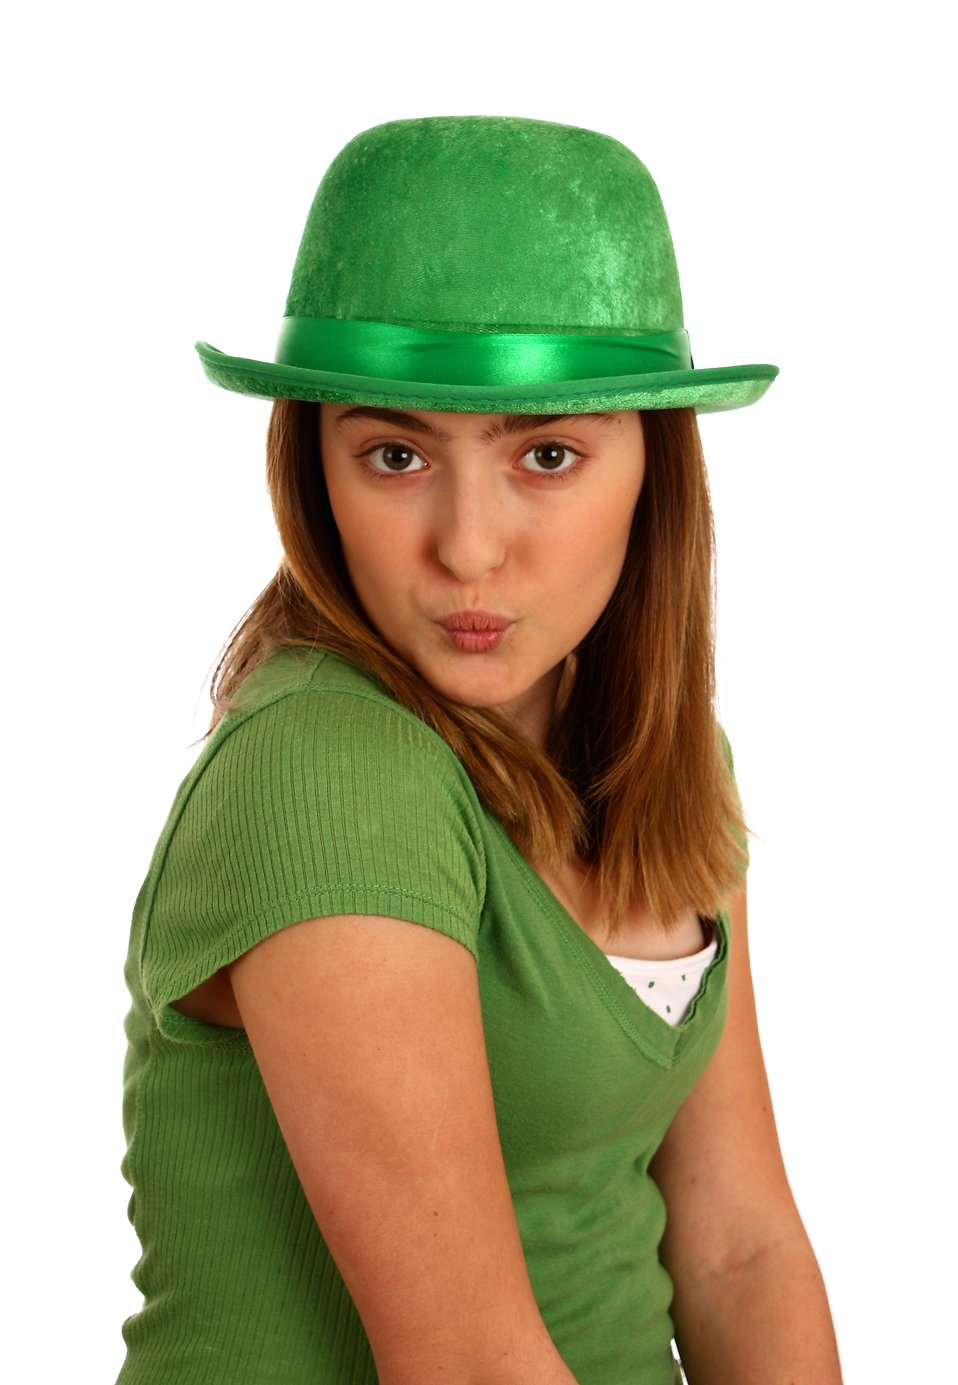 A cute young girl dressed up for Saint Patrick's Day blowing a kiss : Free Stock Photo